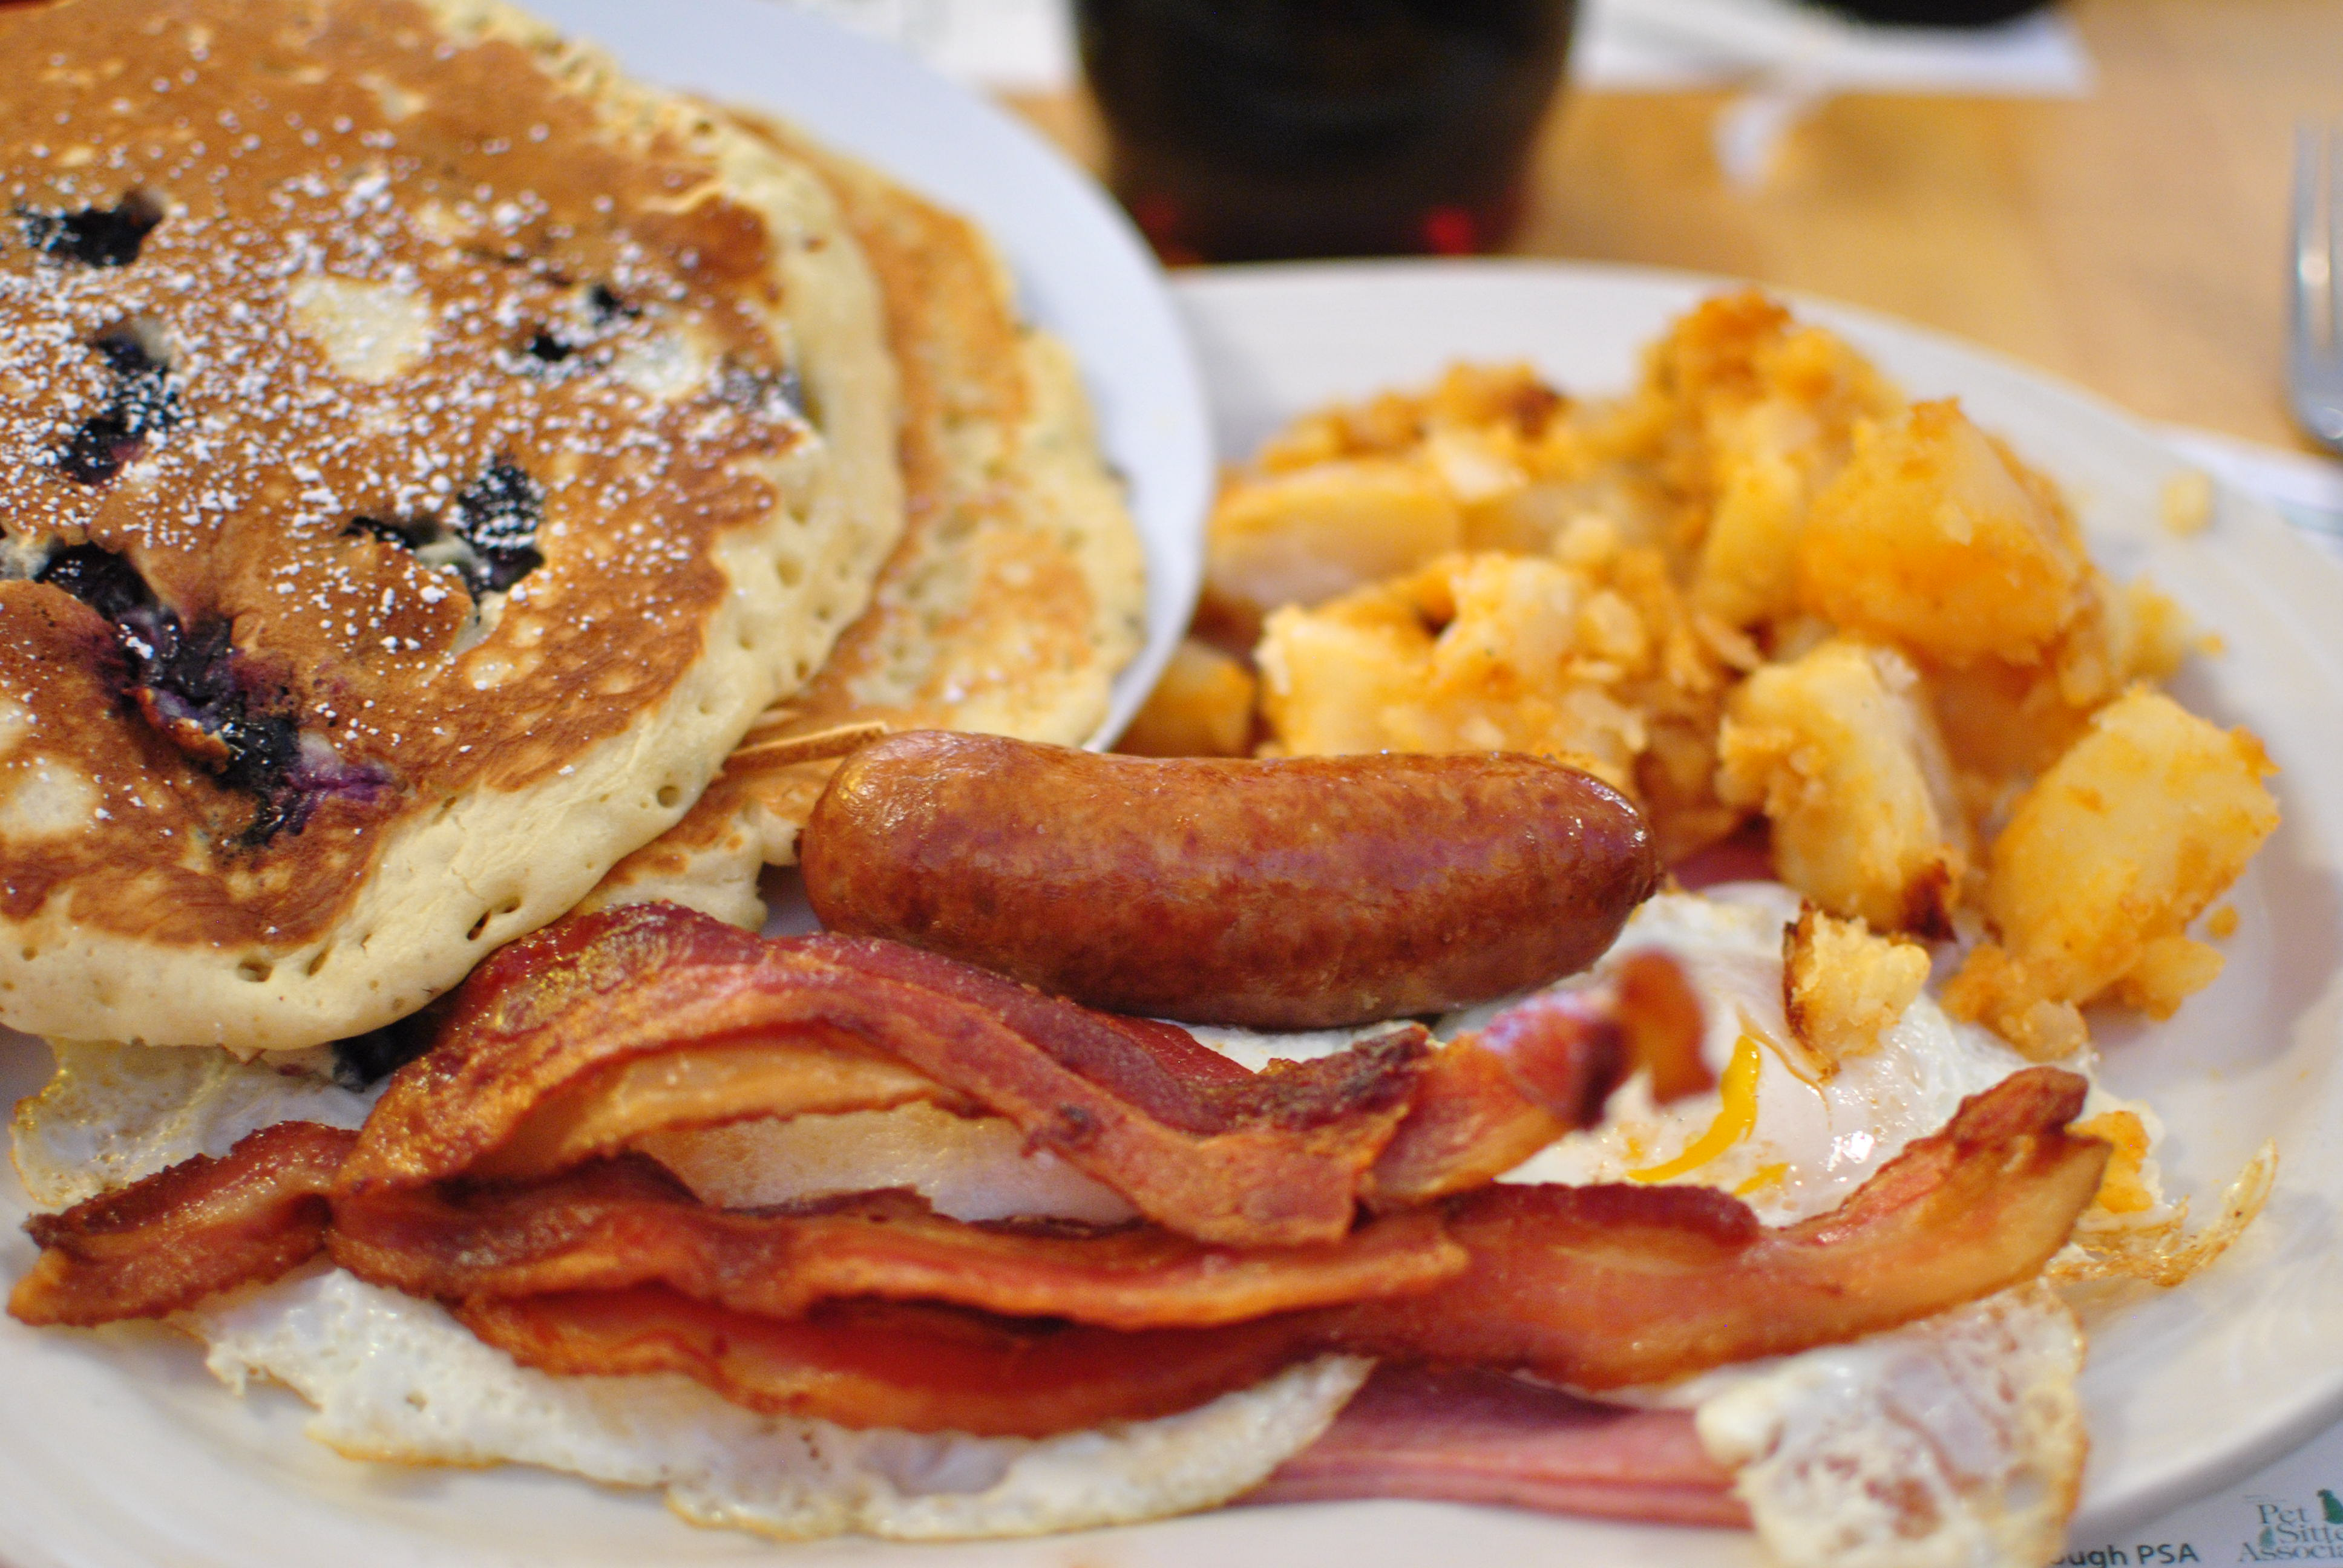 8 Photos of Turkey Sausage Eggs And Bacon Pancakes